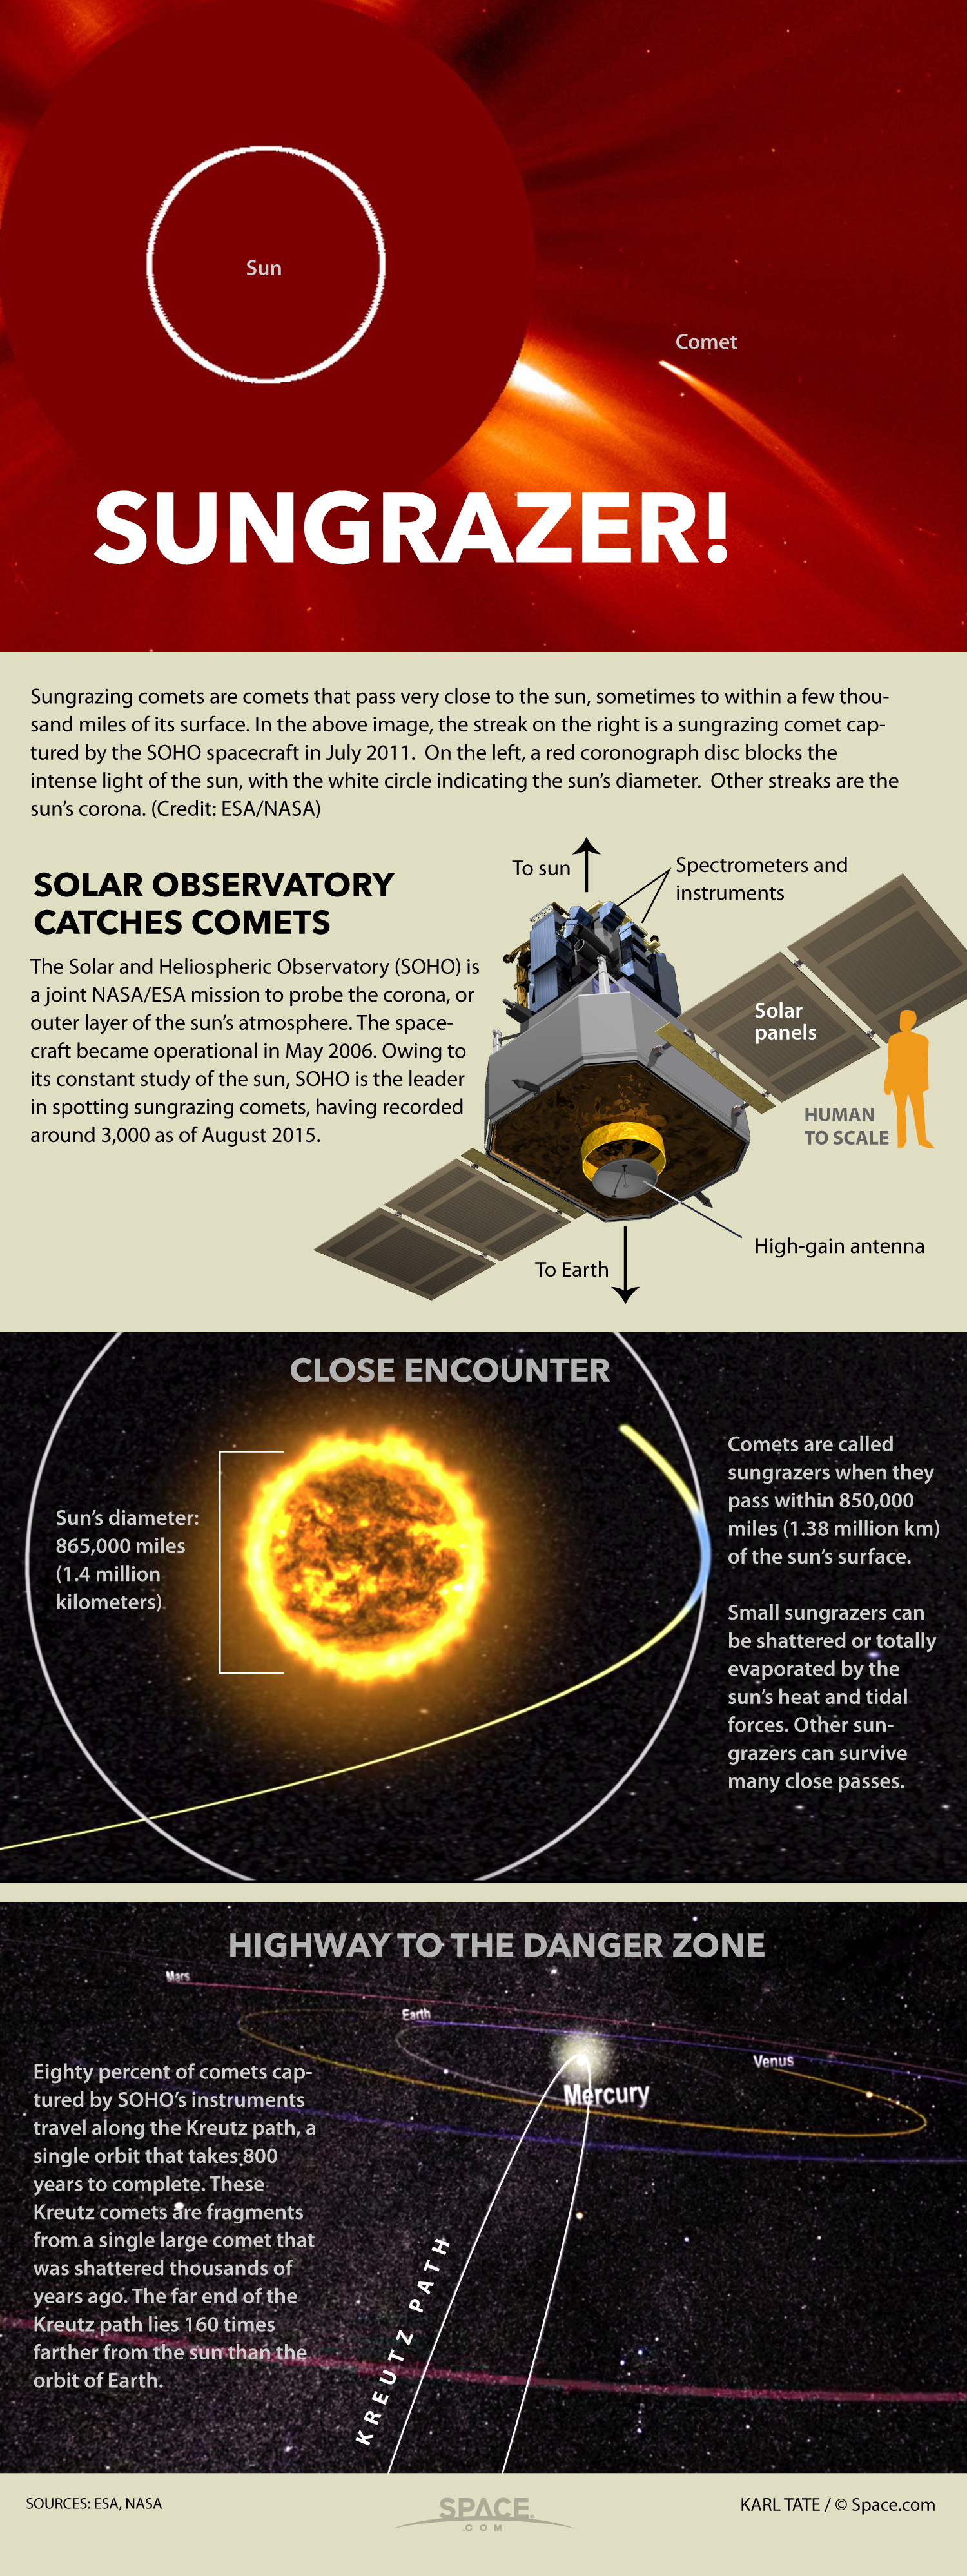 Facts about the sungrazer class of comets.